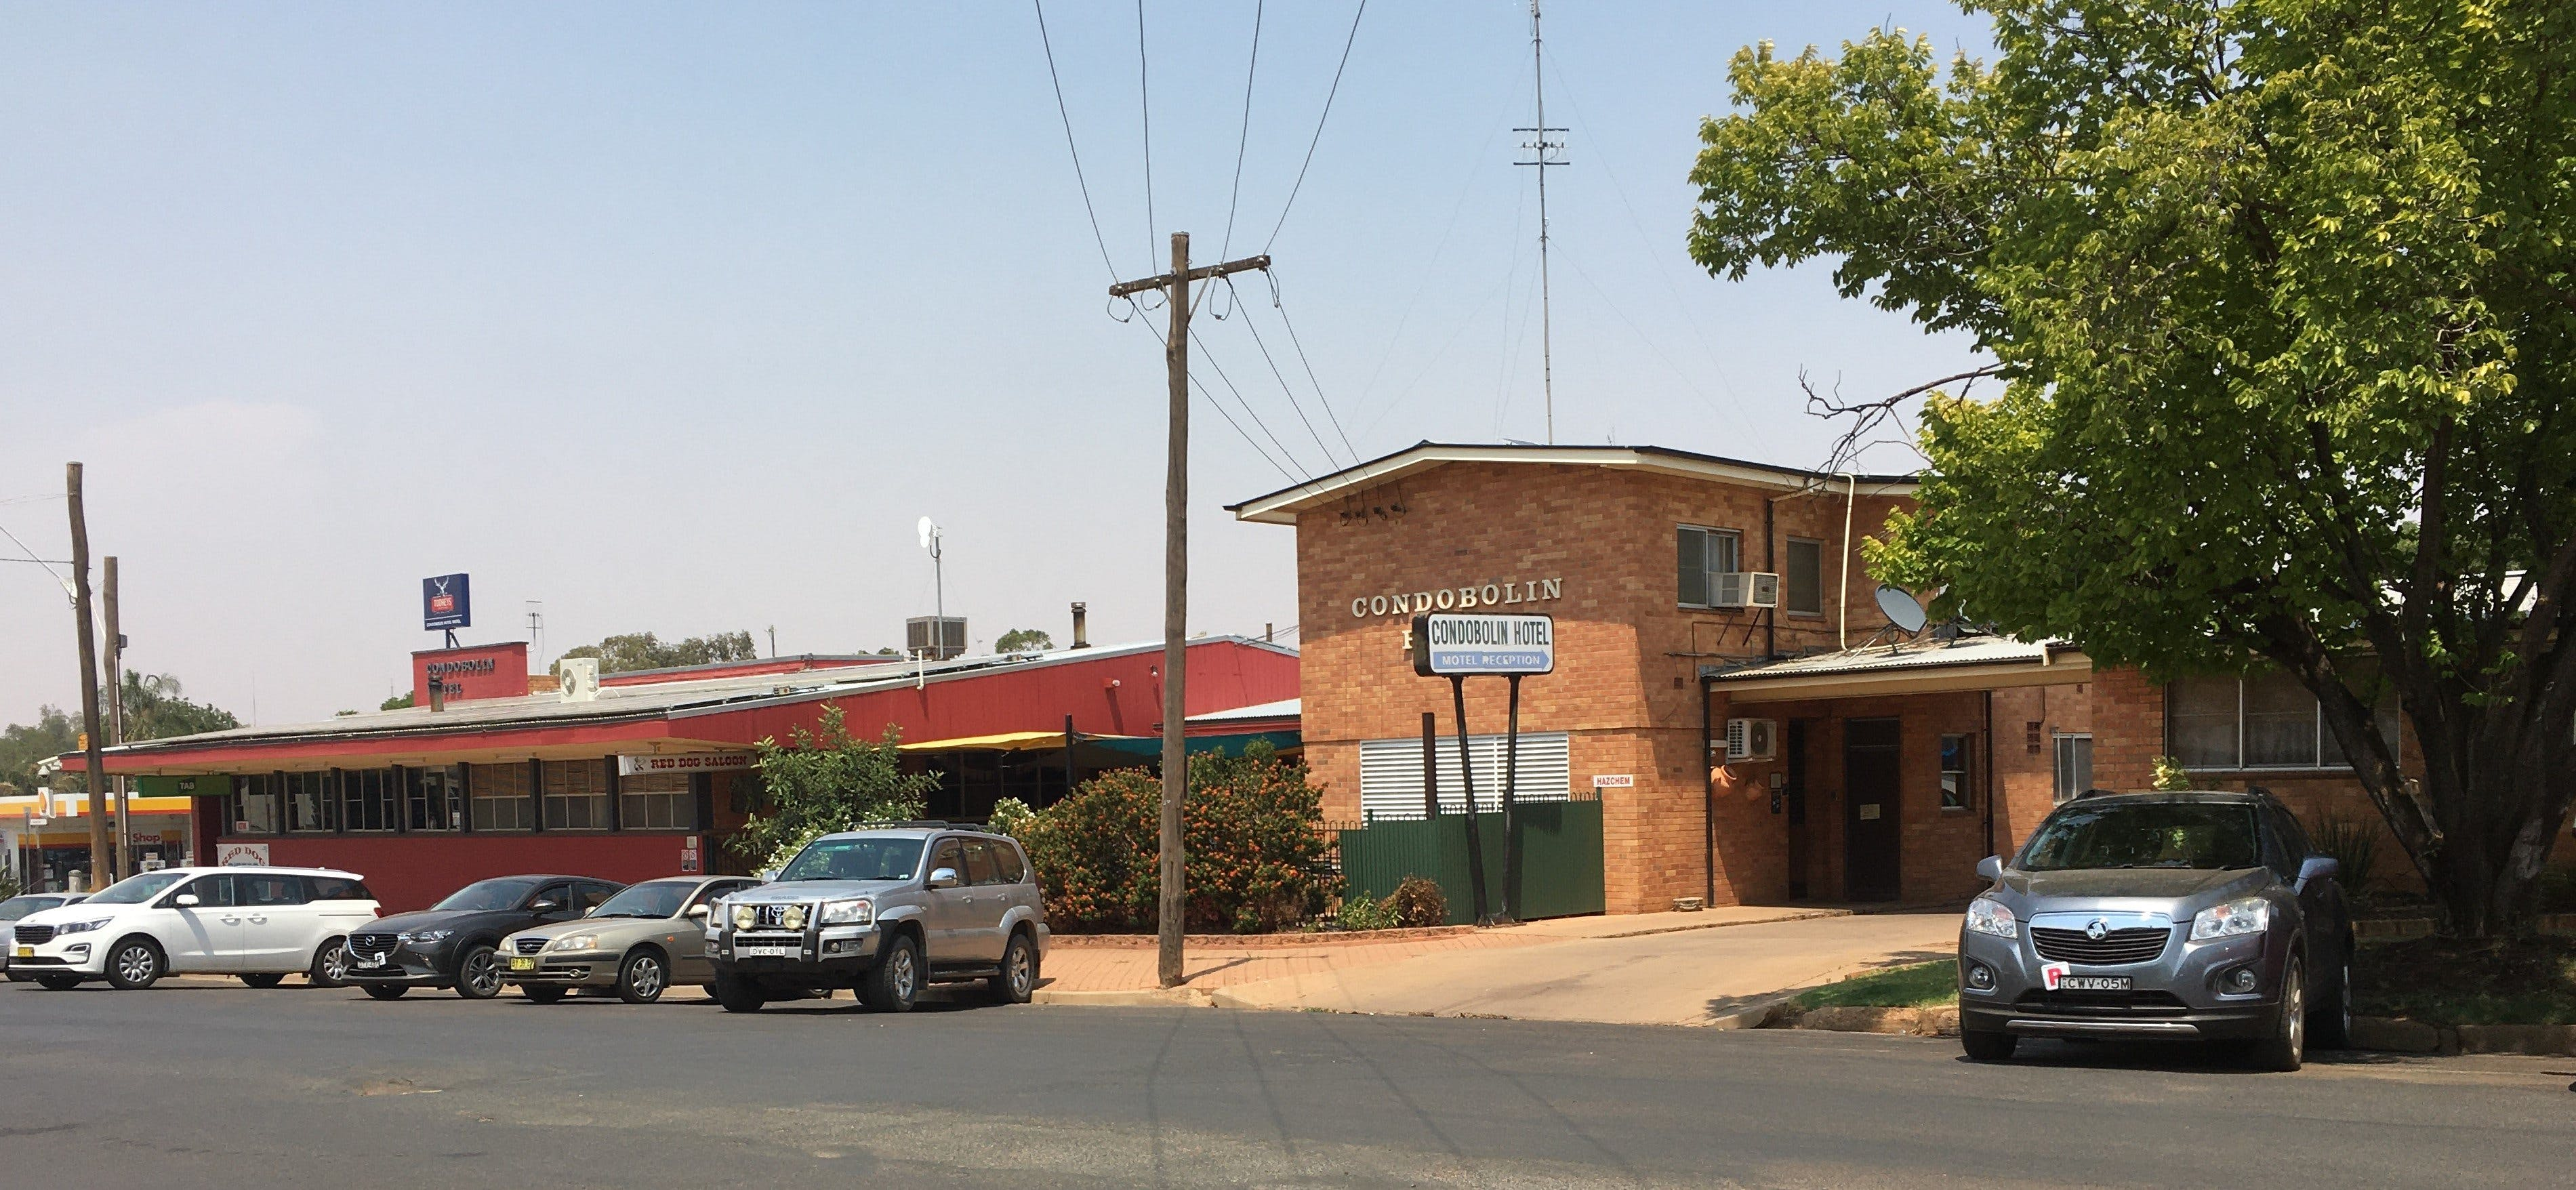 The Condobolin Hotel - Newcastle Accommodation